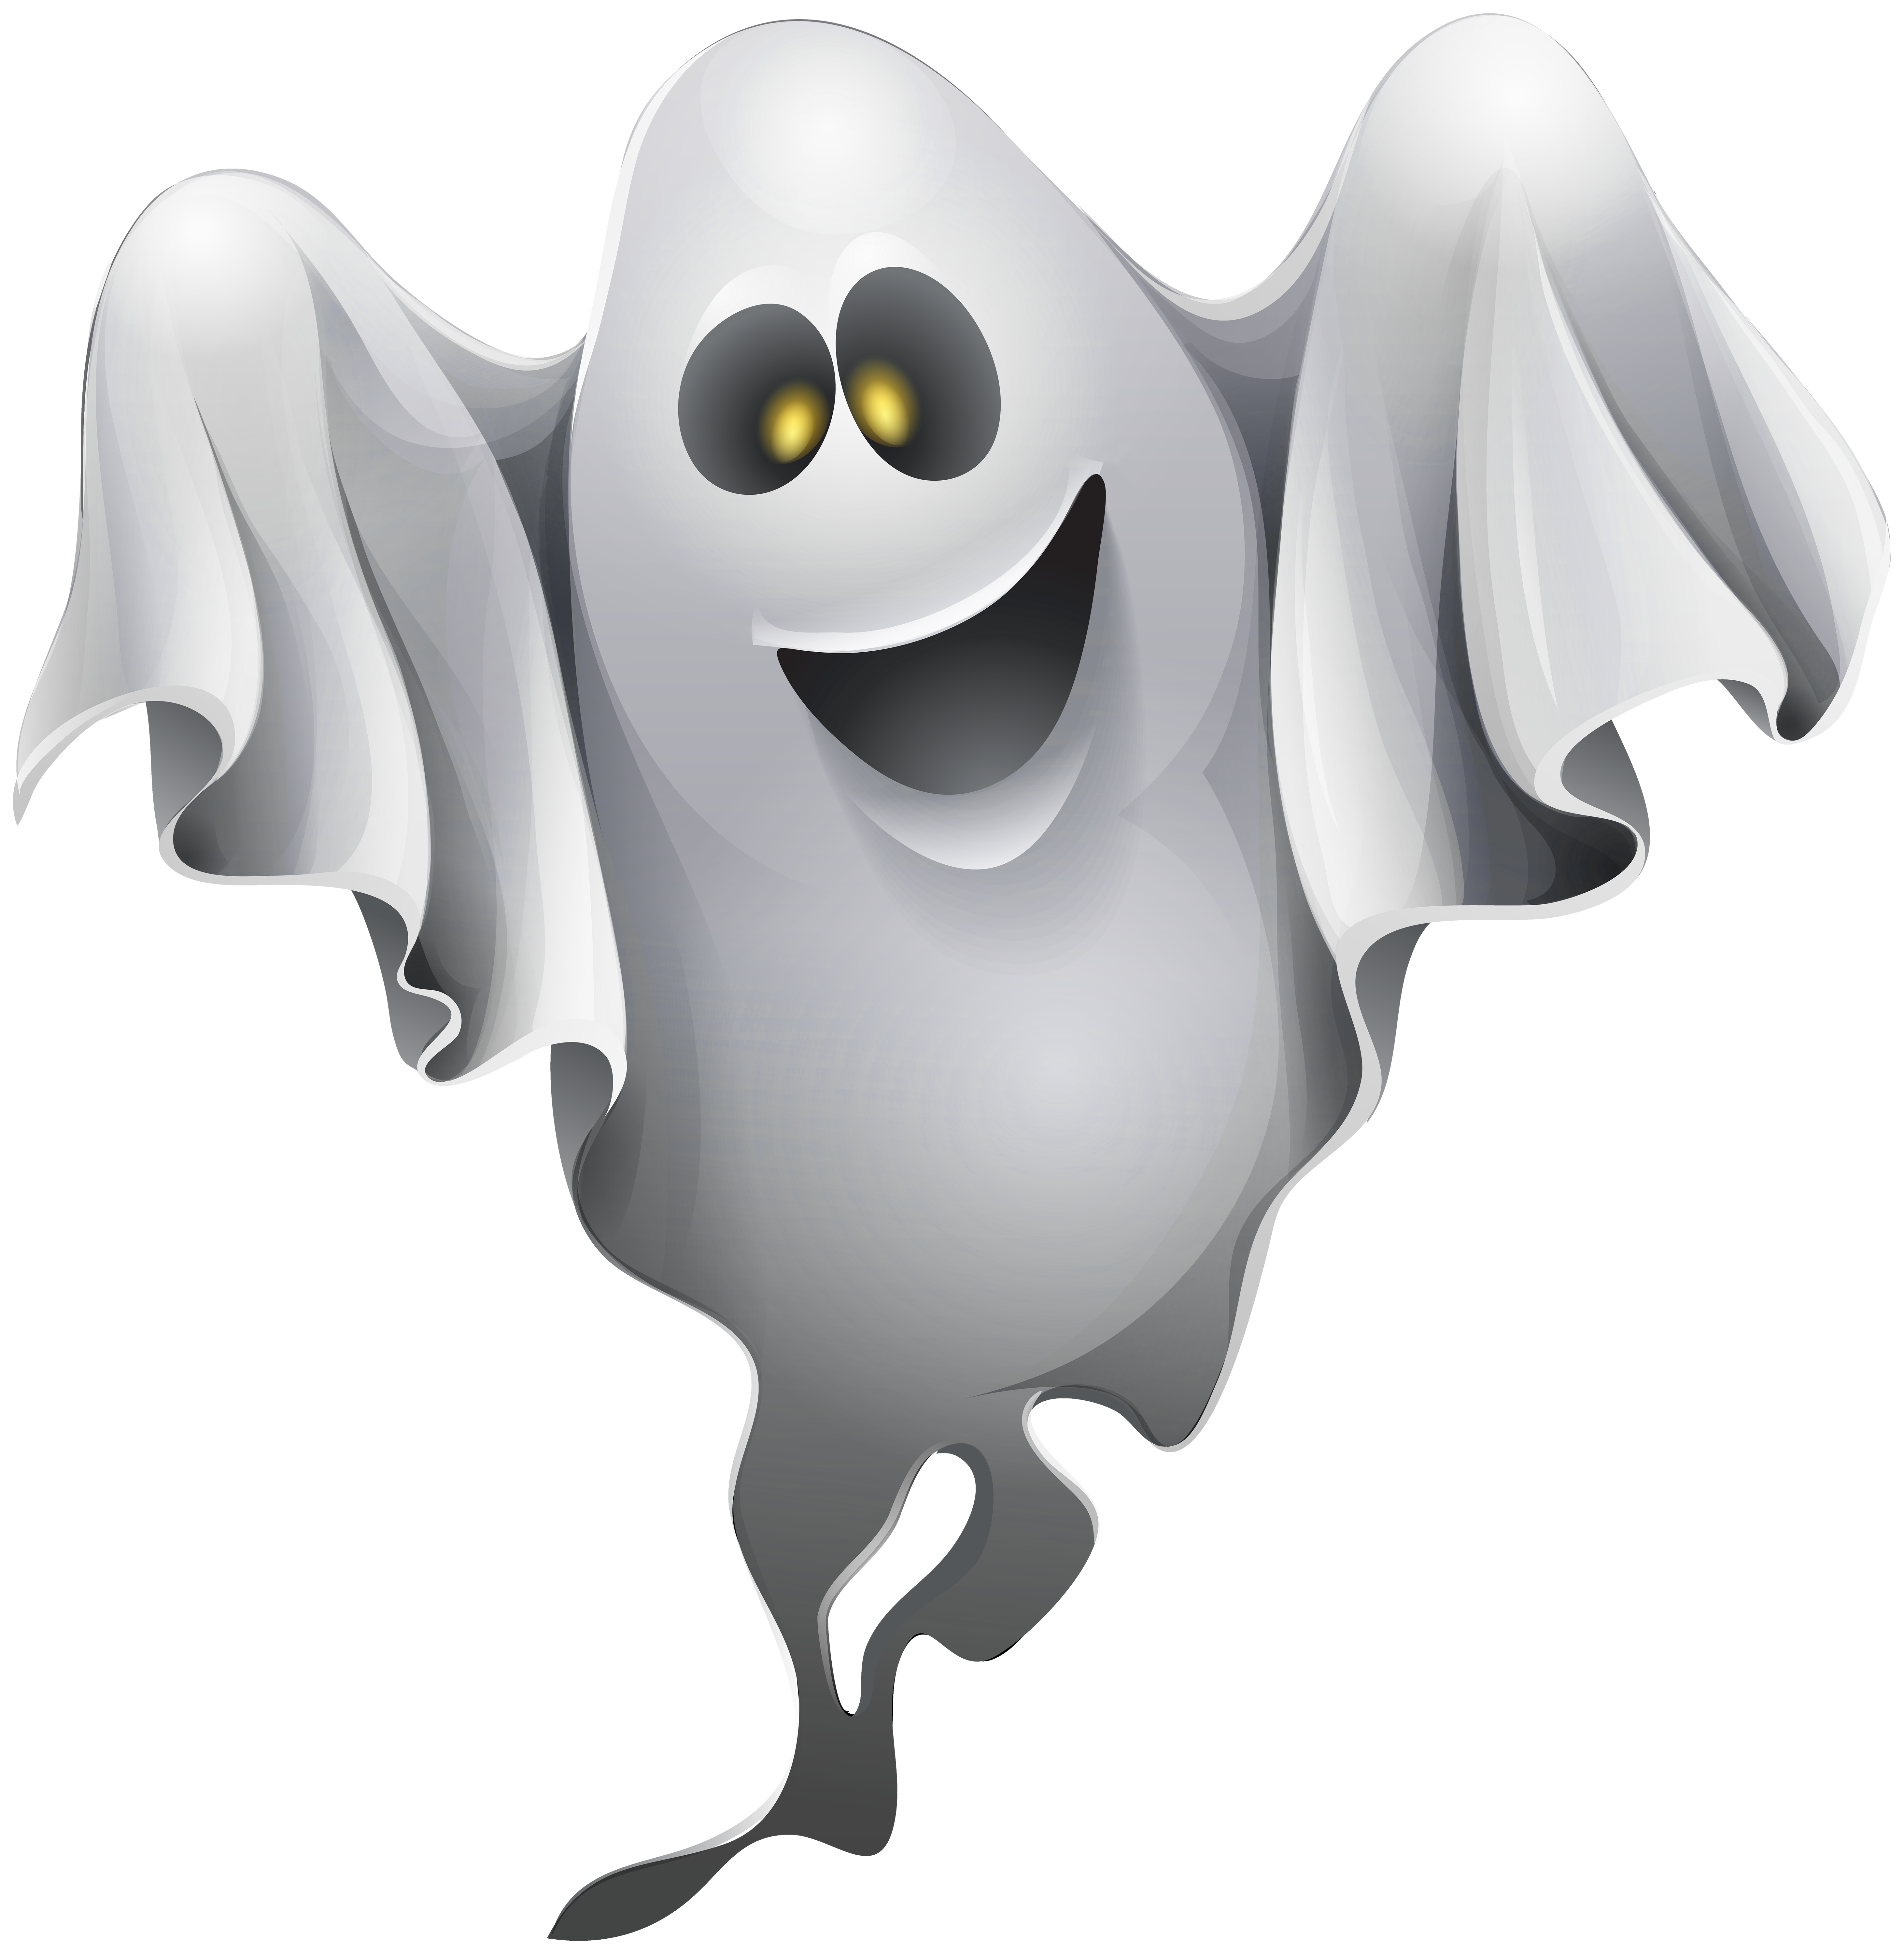 Ghost Free Png Images Halloween Ghost Scary Ghost Ghost Cute Transparent Free Transparent Png Logos